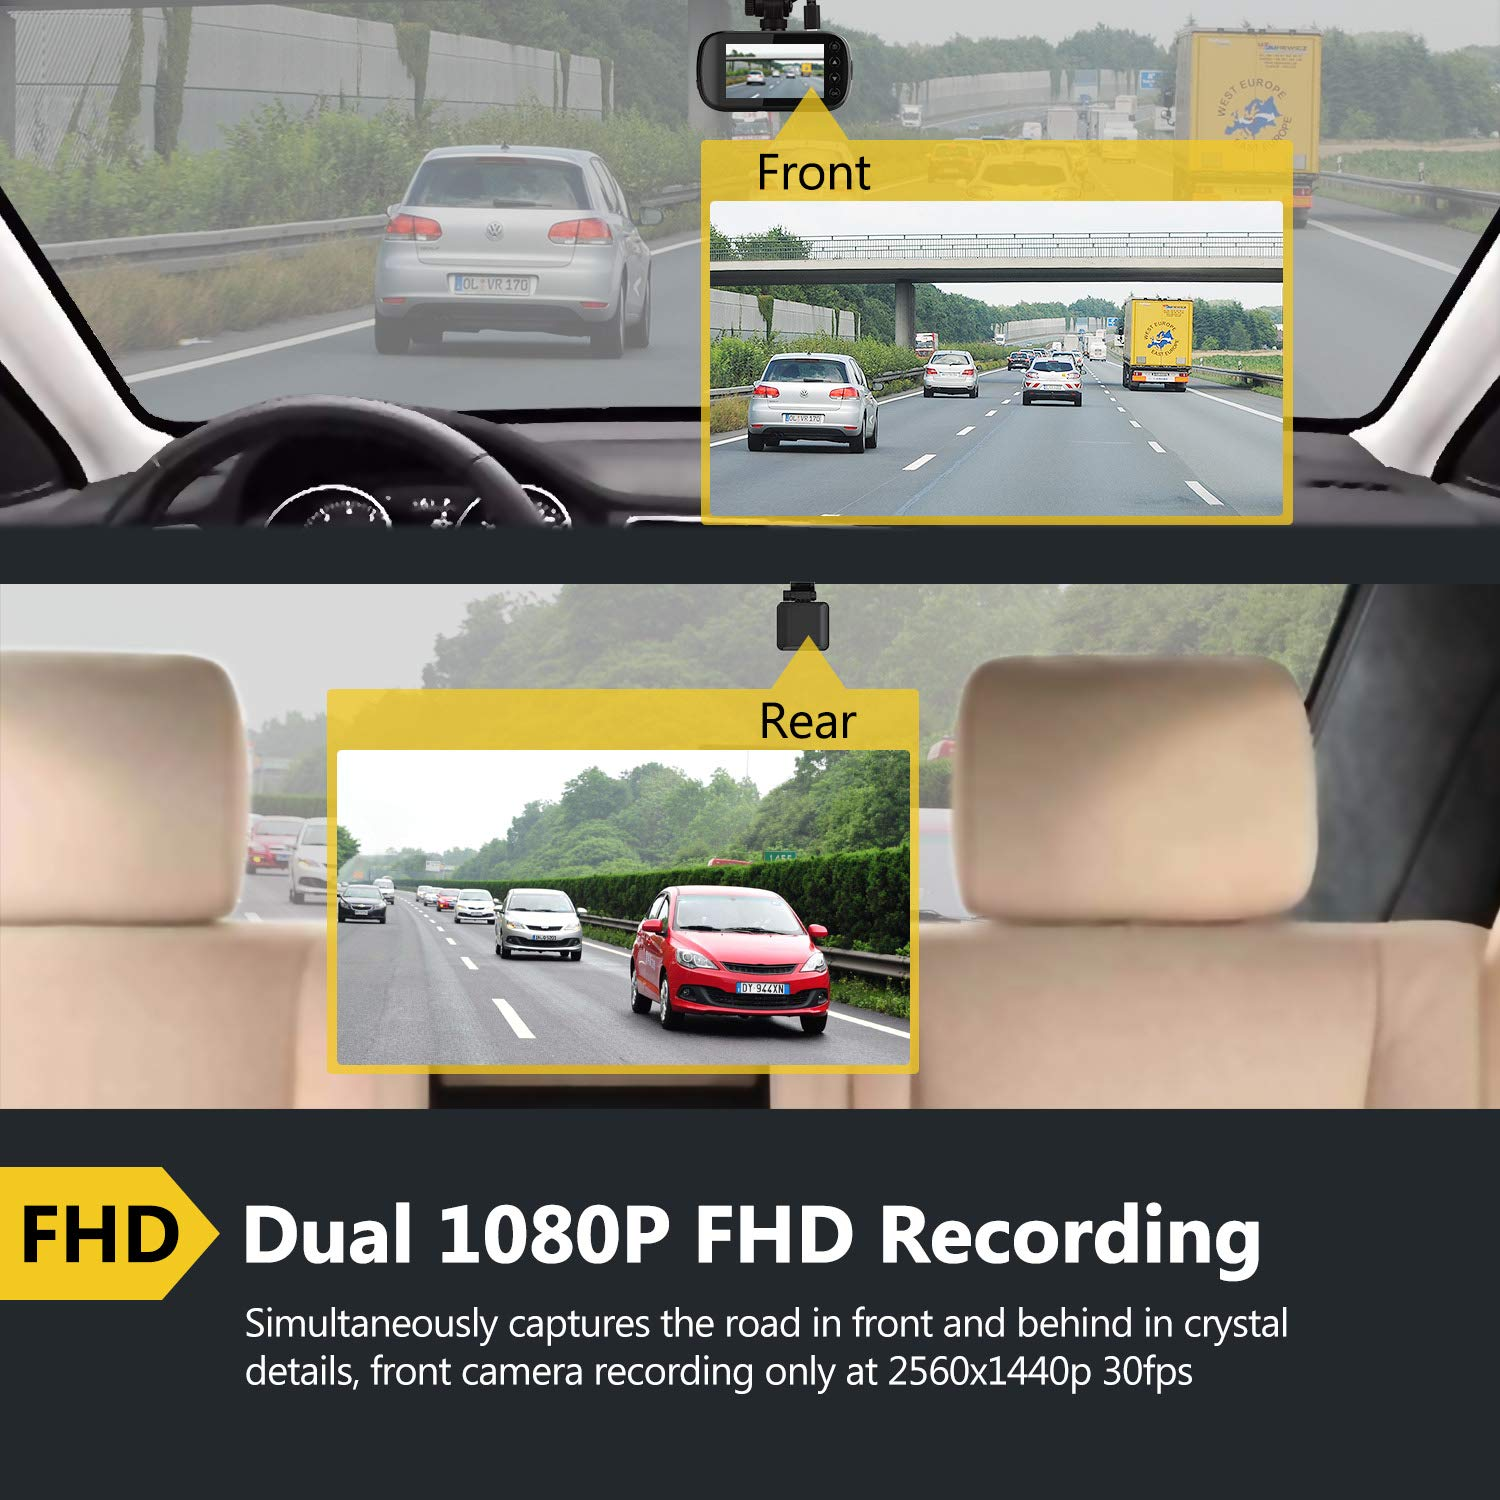 Z-Edge Z3D Dual Lens Dash Cam, 2.7'' Screen Ultra HD 1440P Front & 1080P Rear 150 Degree Wide Angle Front and Rear Dash Cam, Dashboard Camera with GPS, WDR, Low Light Vision, Parking Mode, G-Sensor by Z Z-Edge (Image #3)